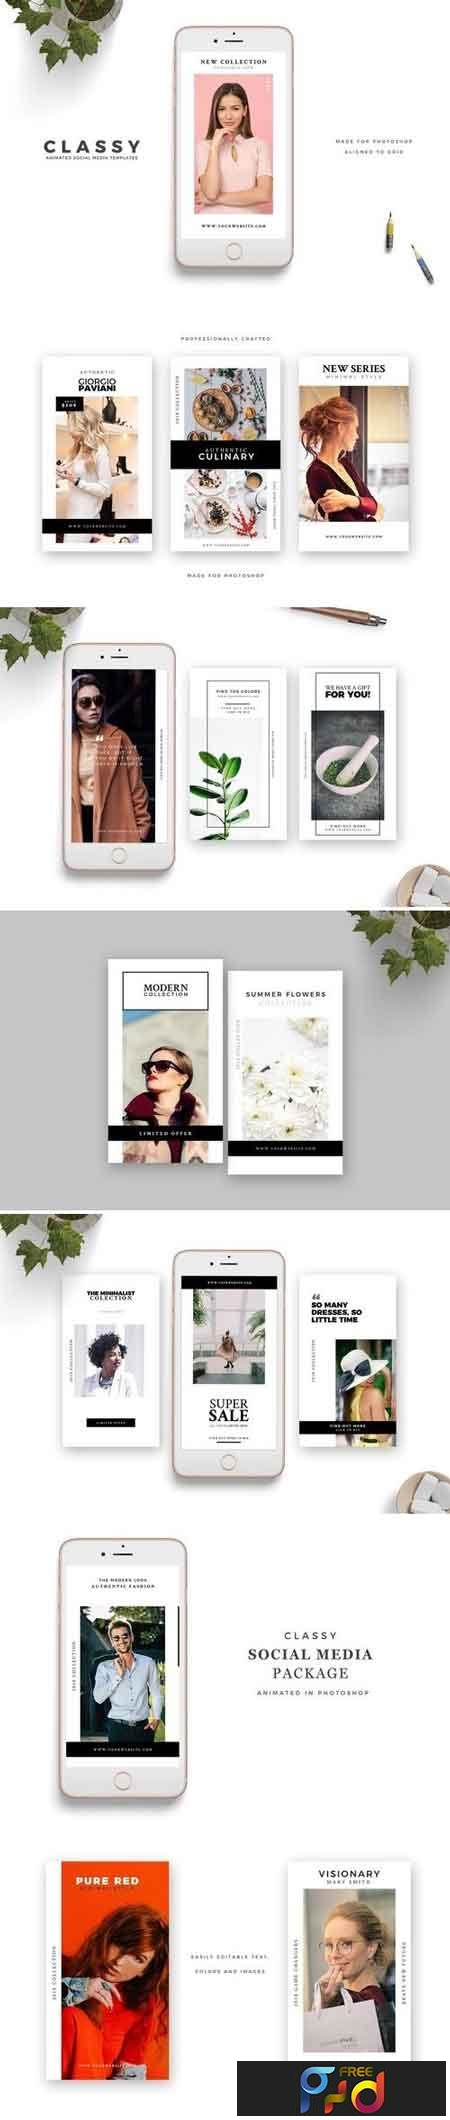 Animated Templates for Instagram 3150773 1